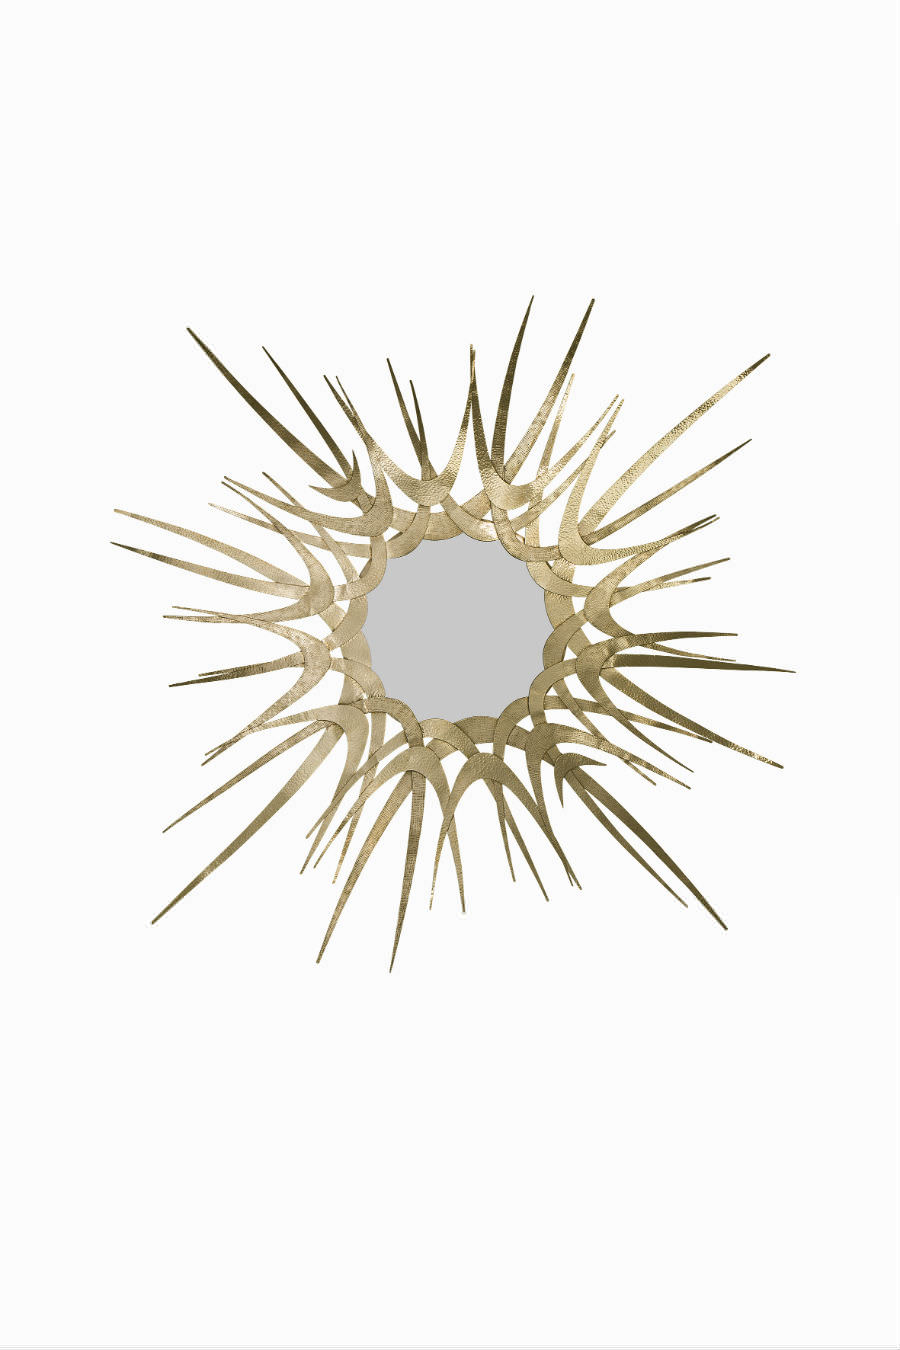 Sculptured gold tones of hammered and textured metal with a hint of hard edge surround a perfectly cut convex mirror.